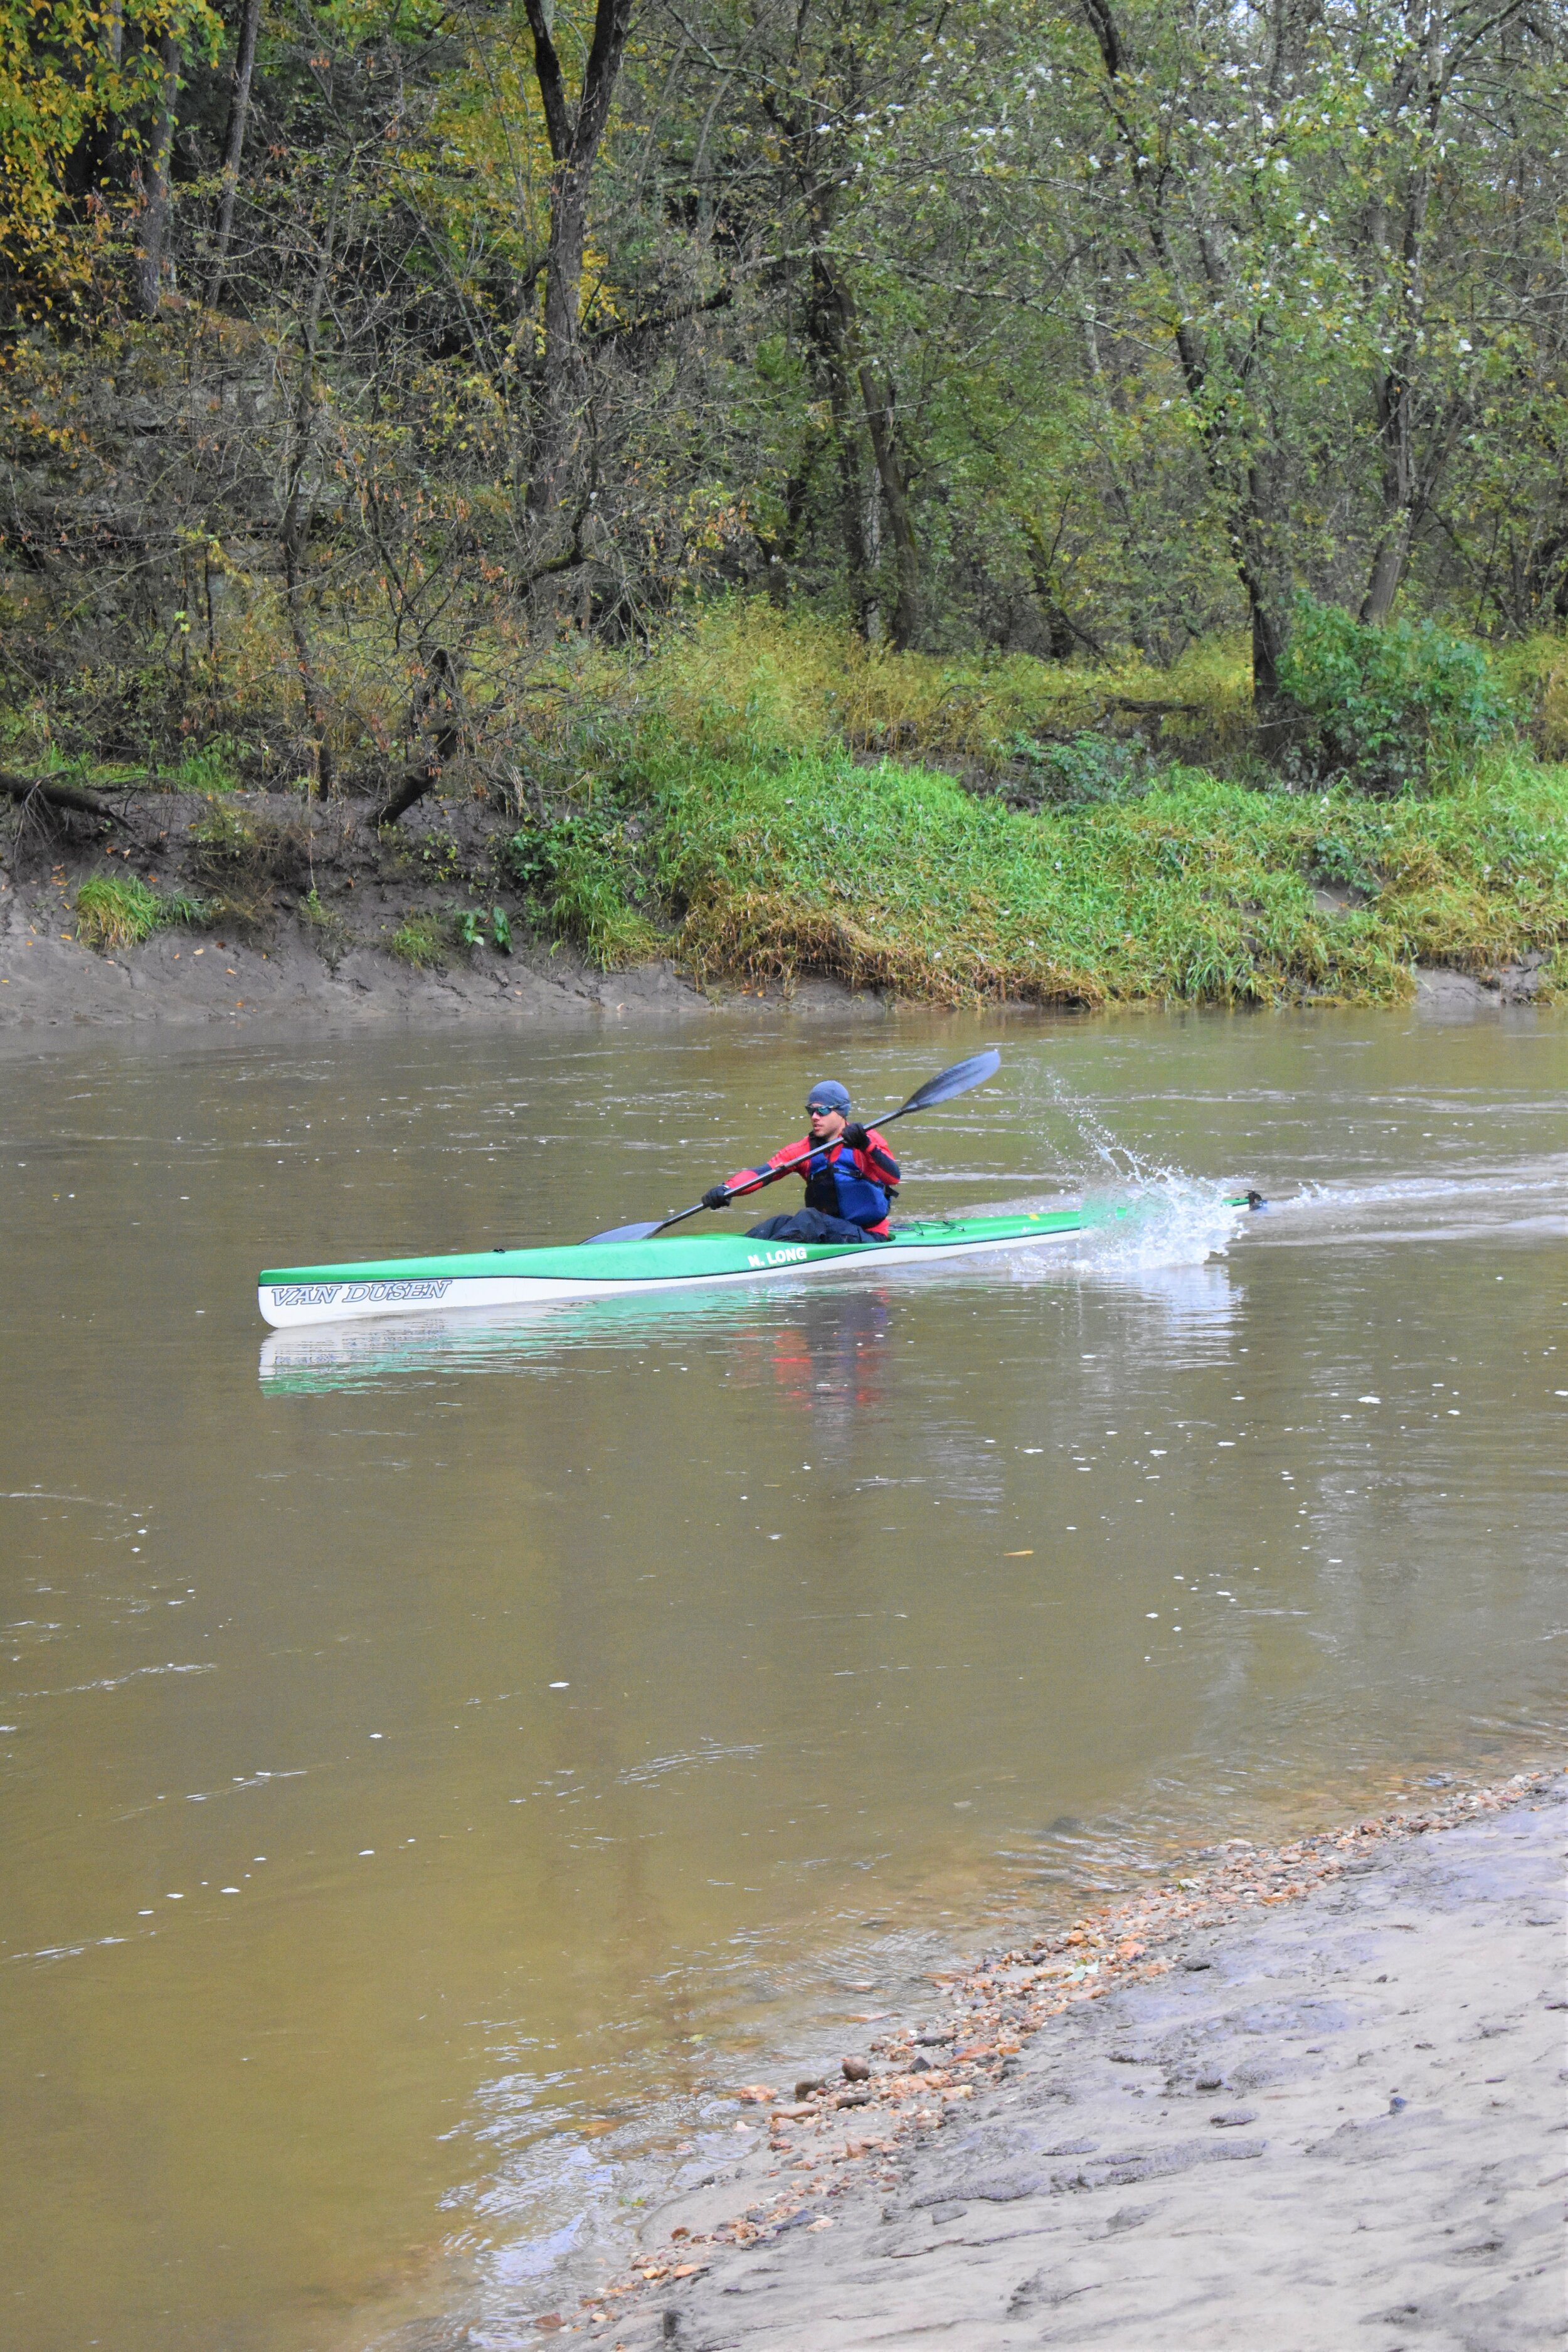 First in the water, and this years first place finisher, Nathan Long from Rib Lake, WI.